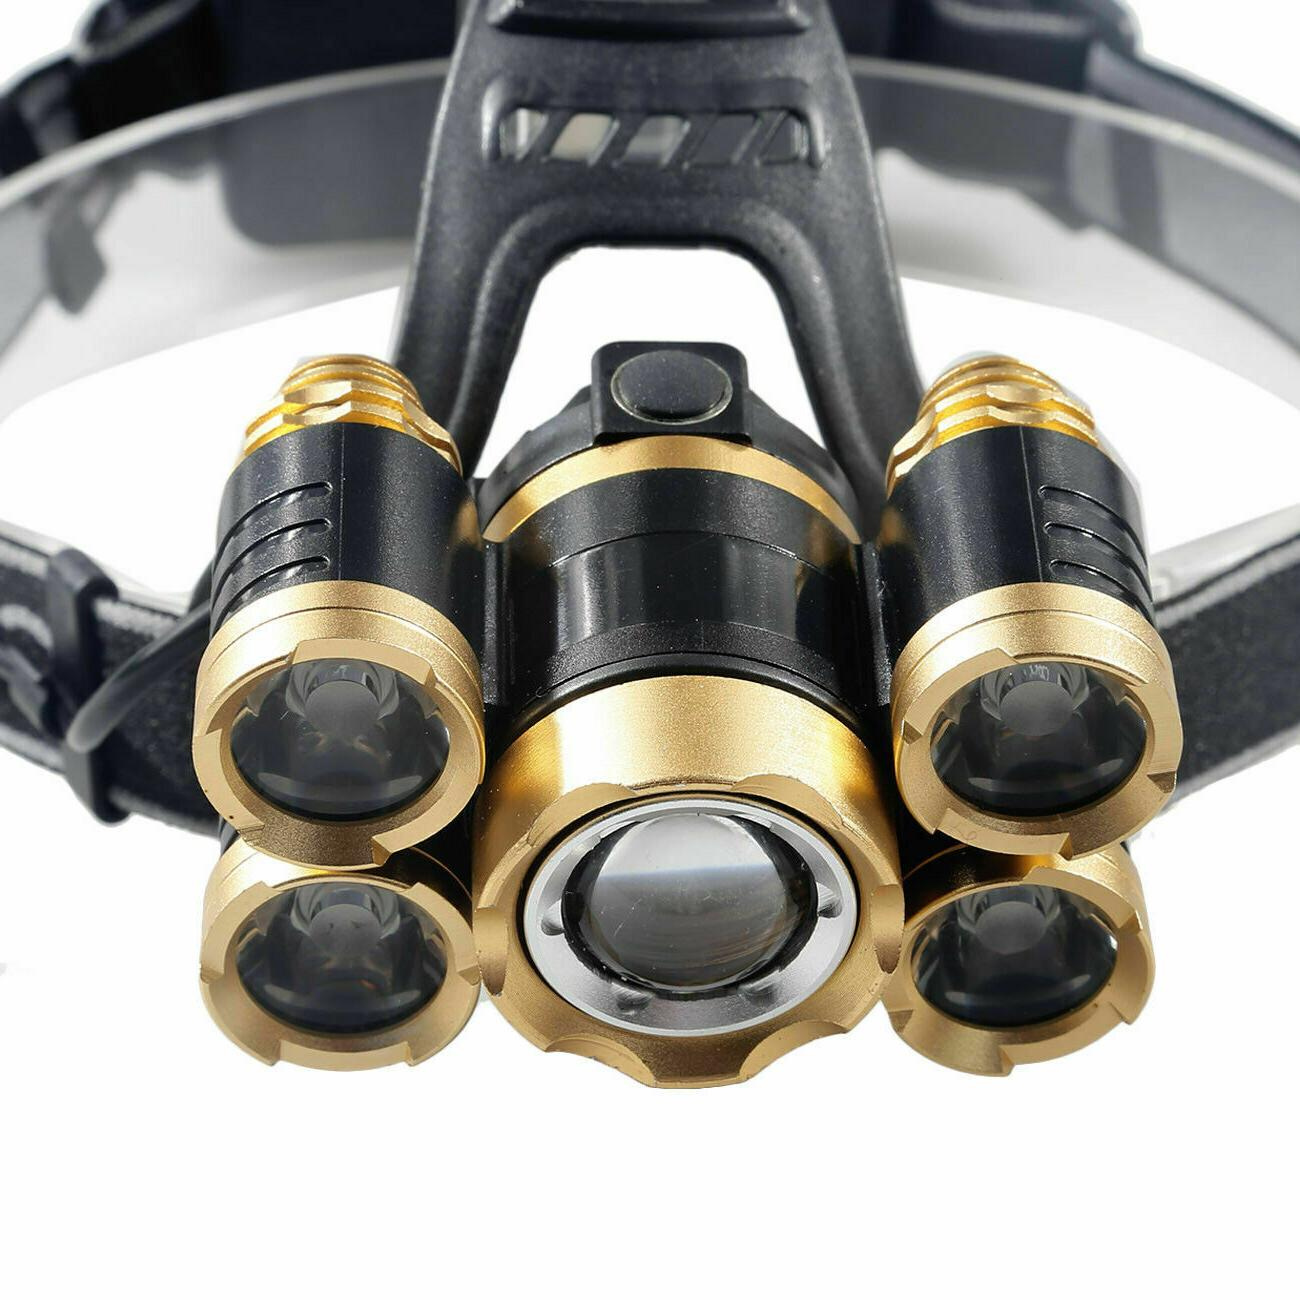 990000LM 5X T6 LED Headlamp Flashlight Torch